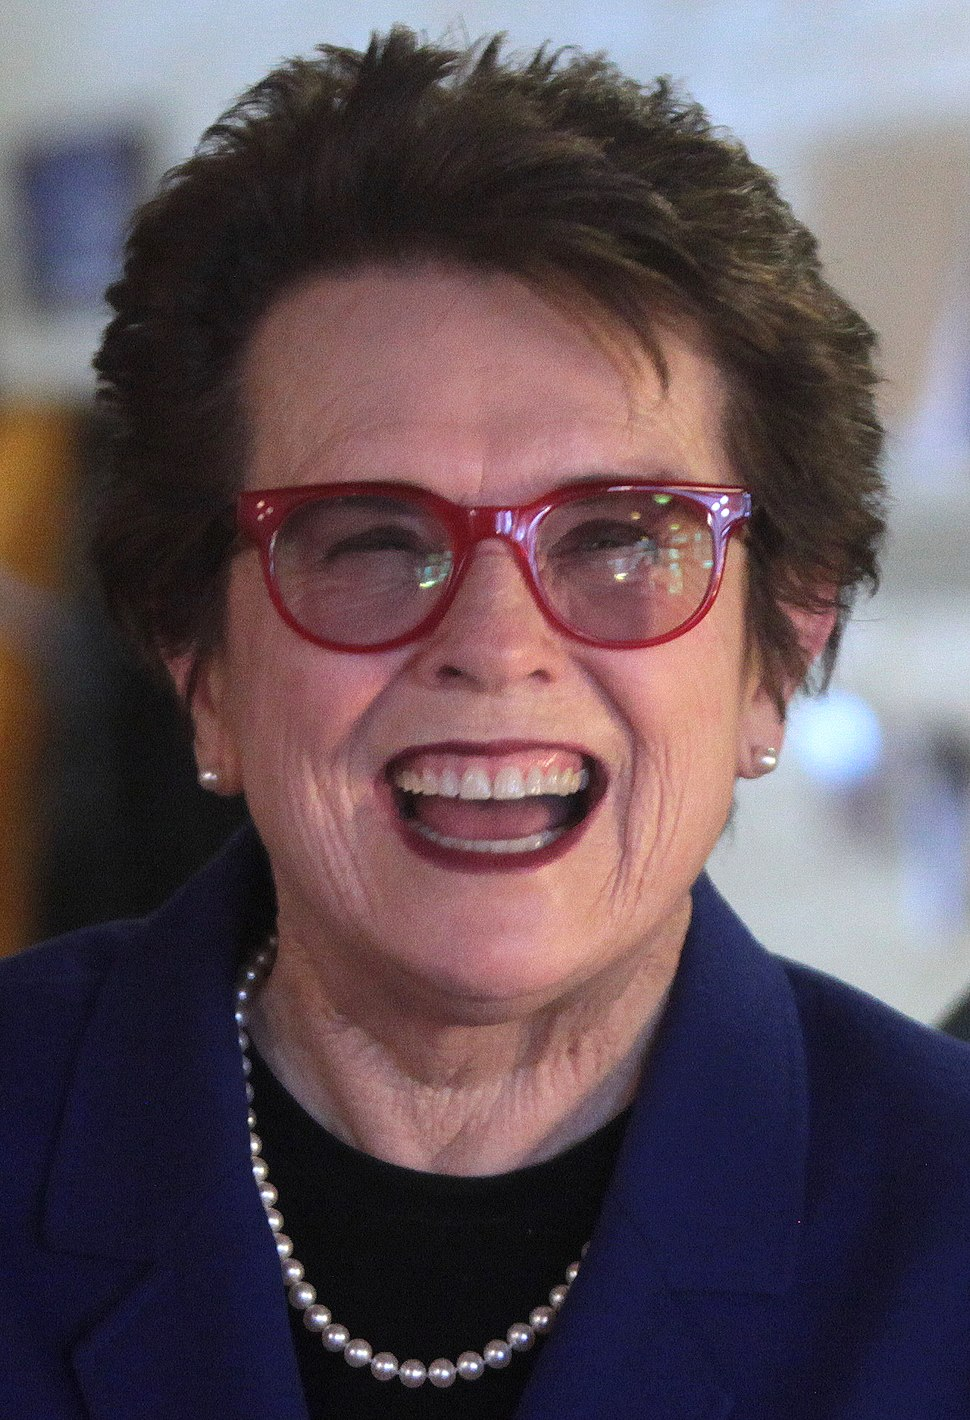 Billie Jean King, 2016 (cropped)